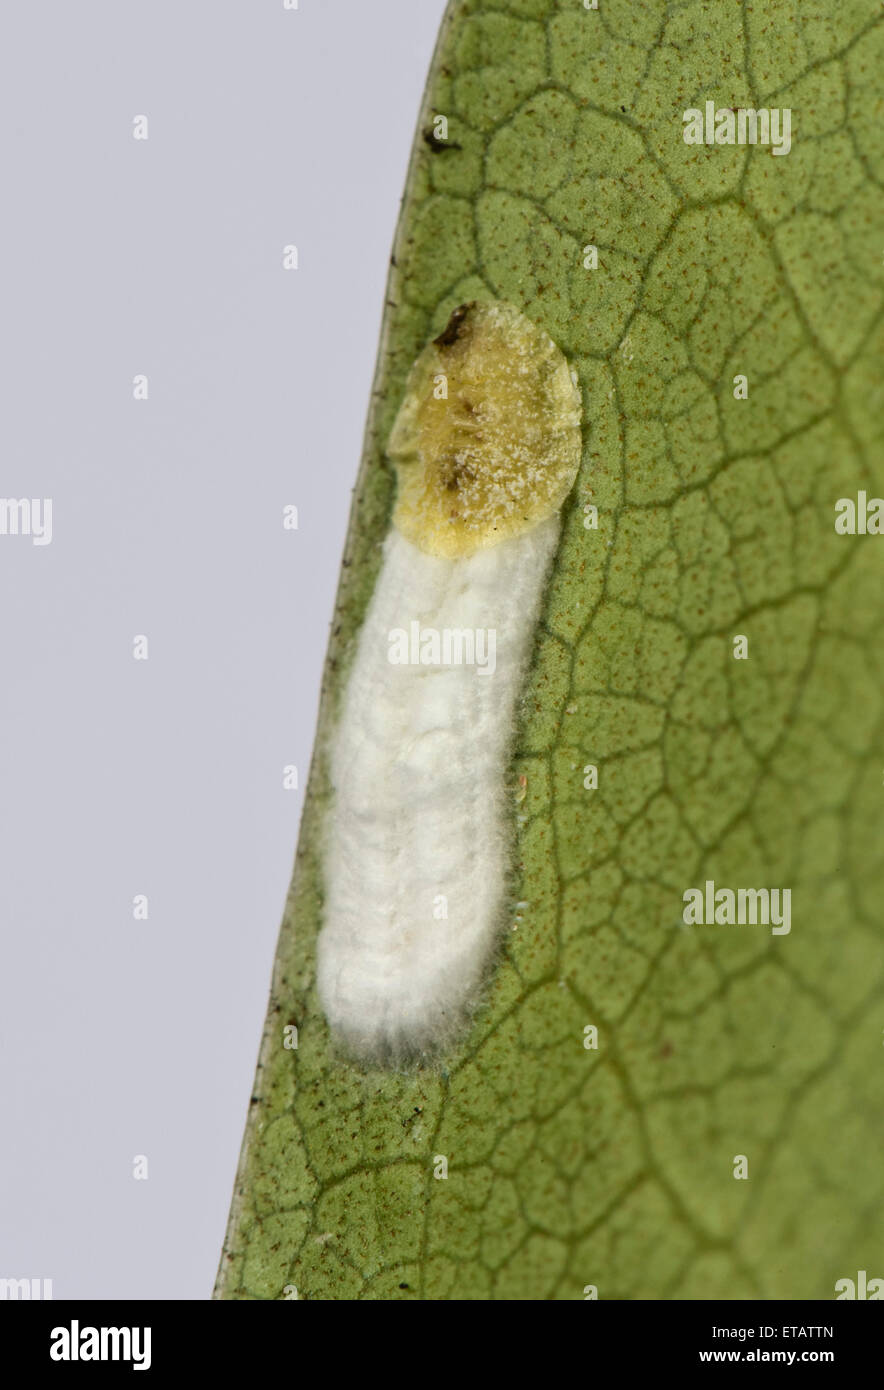 Cushion scale insect, Pulvinaria floccifera, laying eggs on the underside of an ornamental garden Rhododendron leaf - Stock Image